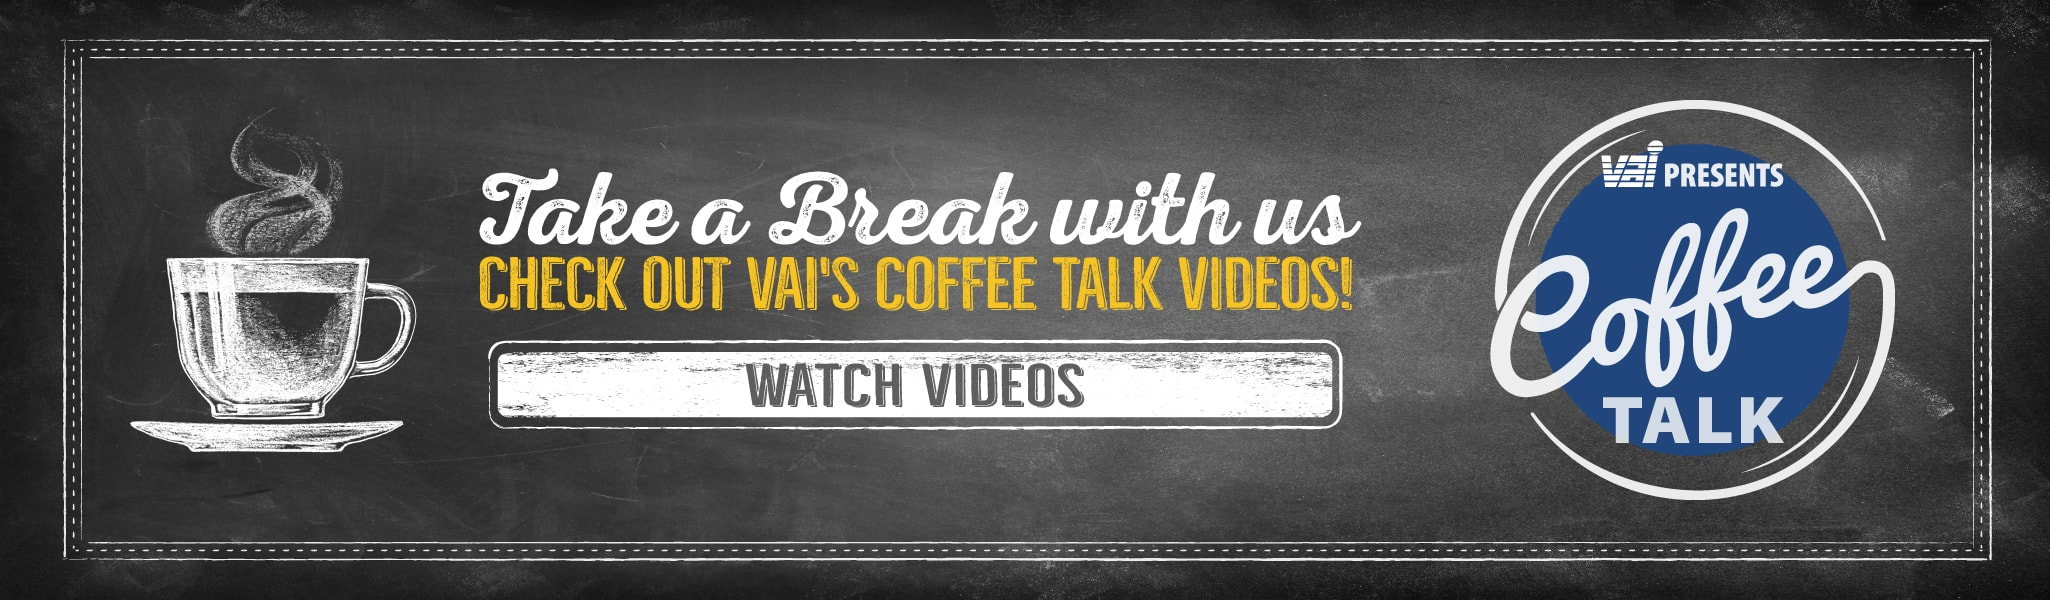 Take a Break with Us | Check out VAI's Coffee Talk Videos